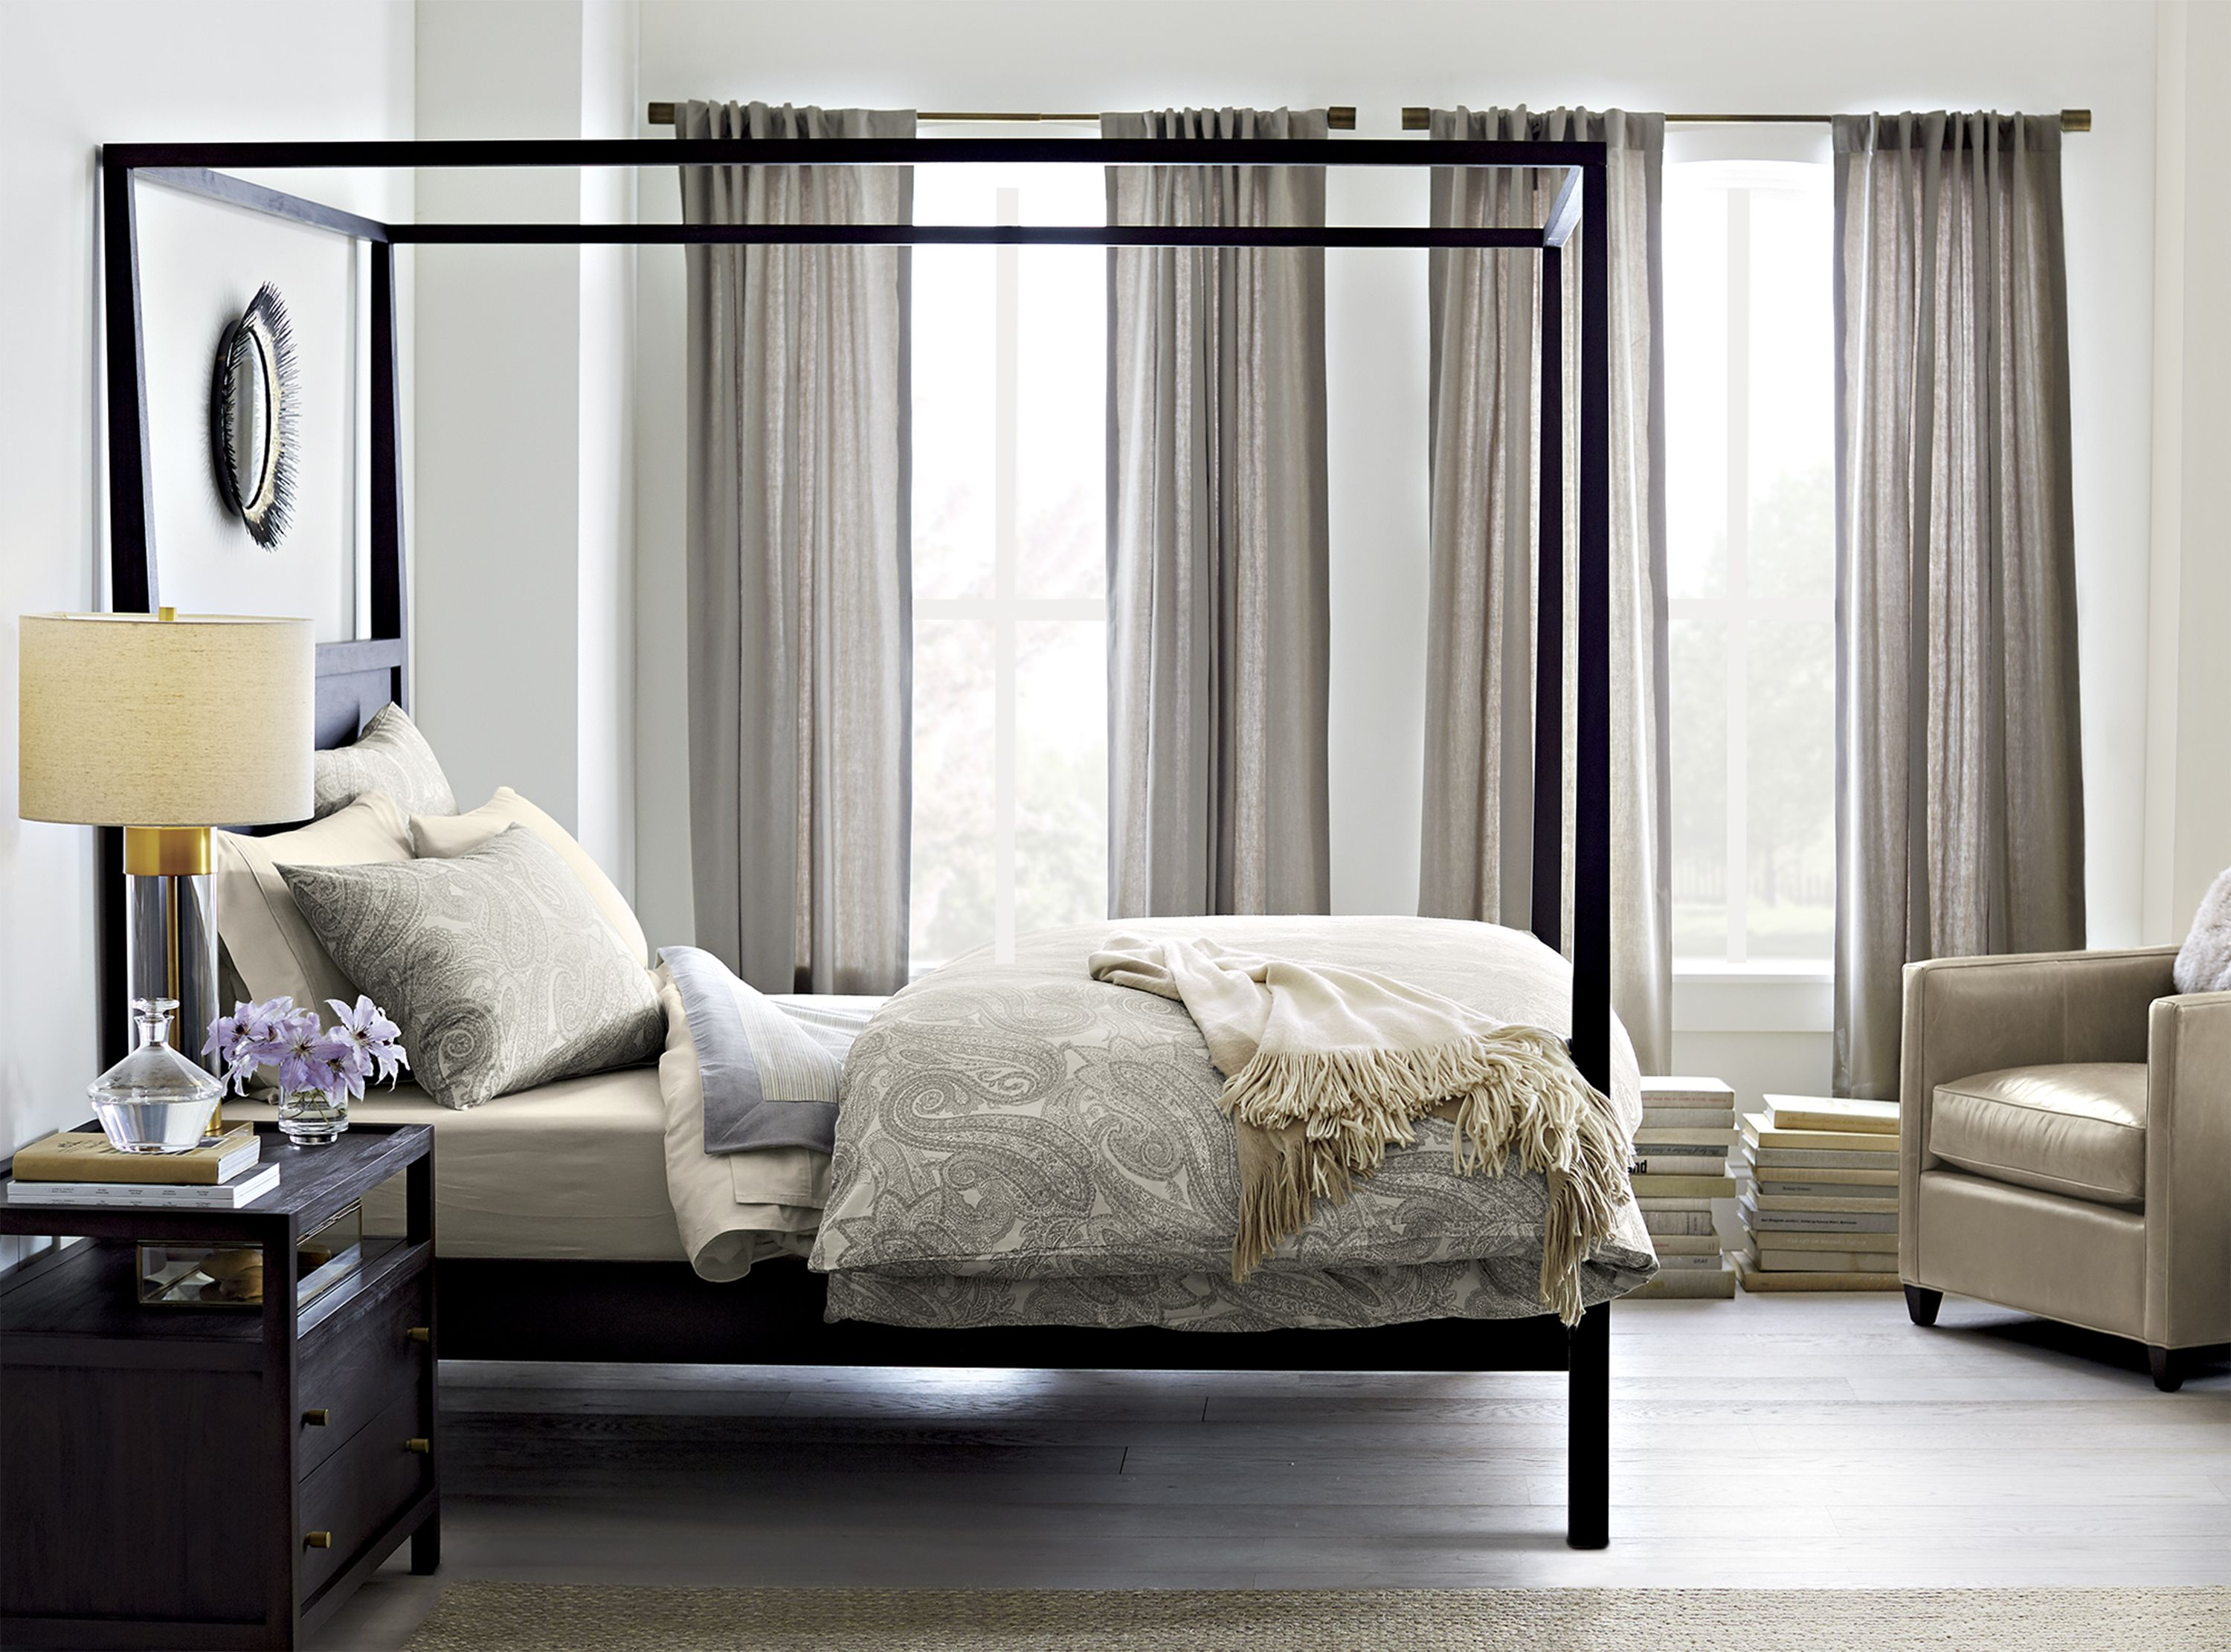 Keane streamlines the traditional canopy bed into an open airy cube of beautiful mahogany veneer